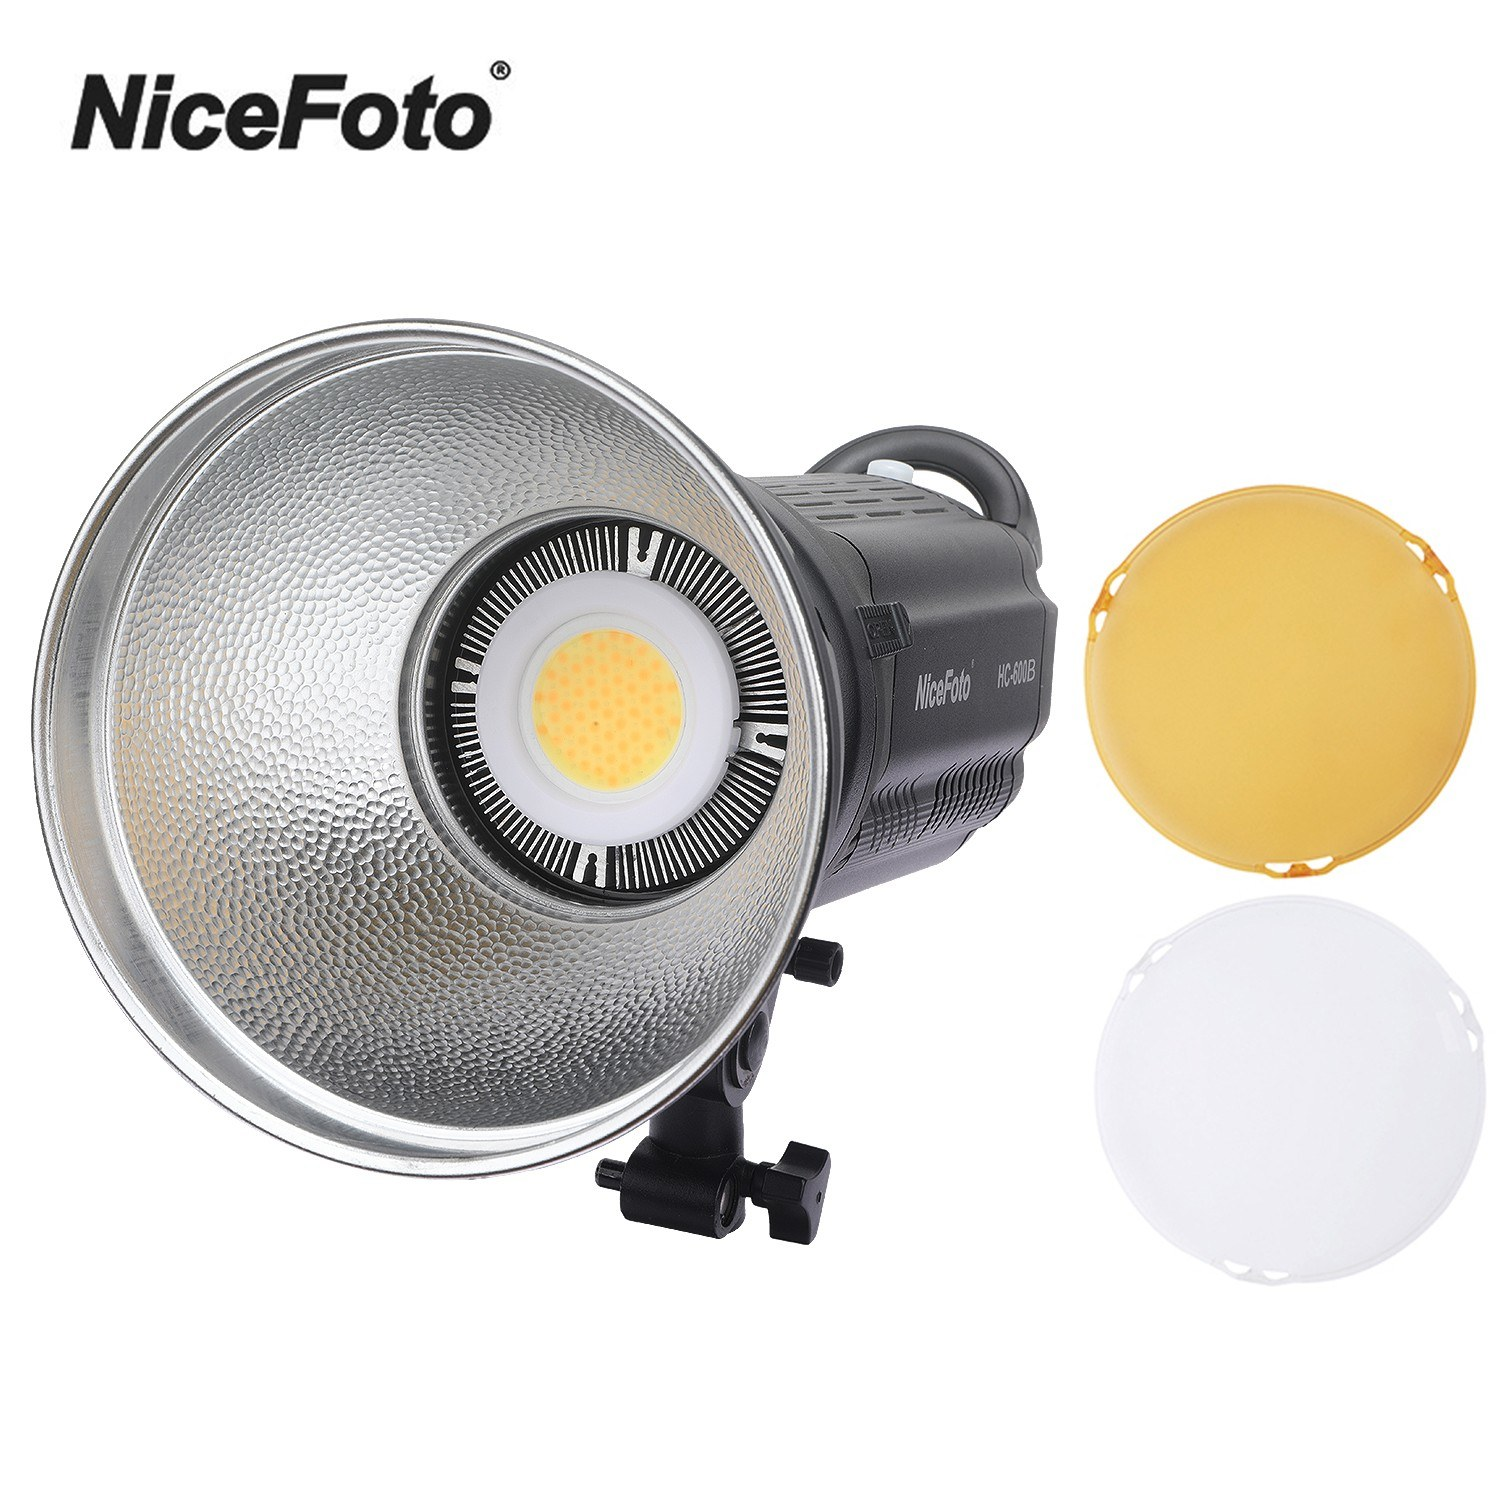 NiceFoto HC-600B Photography LED Video Light Lamp FSK 2.4G Remote Control CRI95+ Stepless Adjustable Brightness 3200K/5600K with Color Filters LCD Display for Studio Outdoor Portrait Wedding Photography